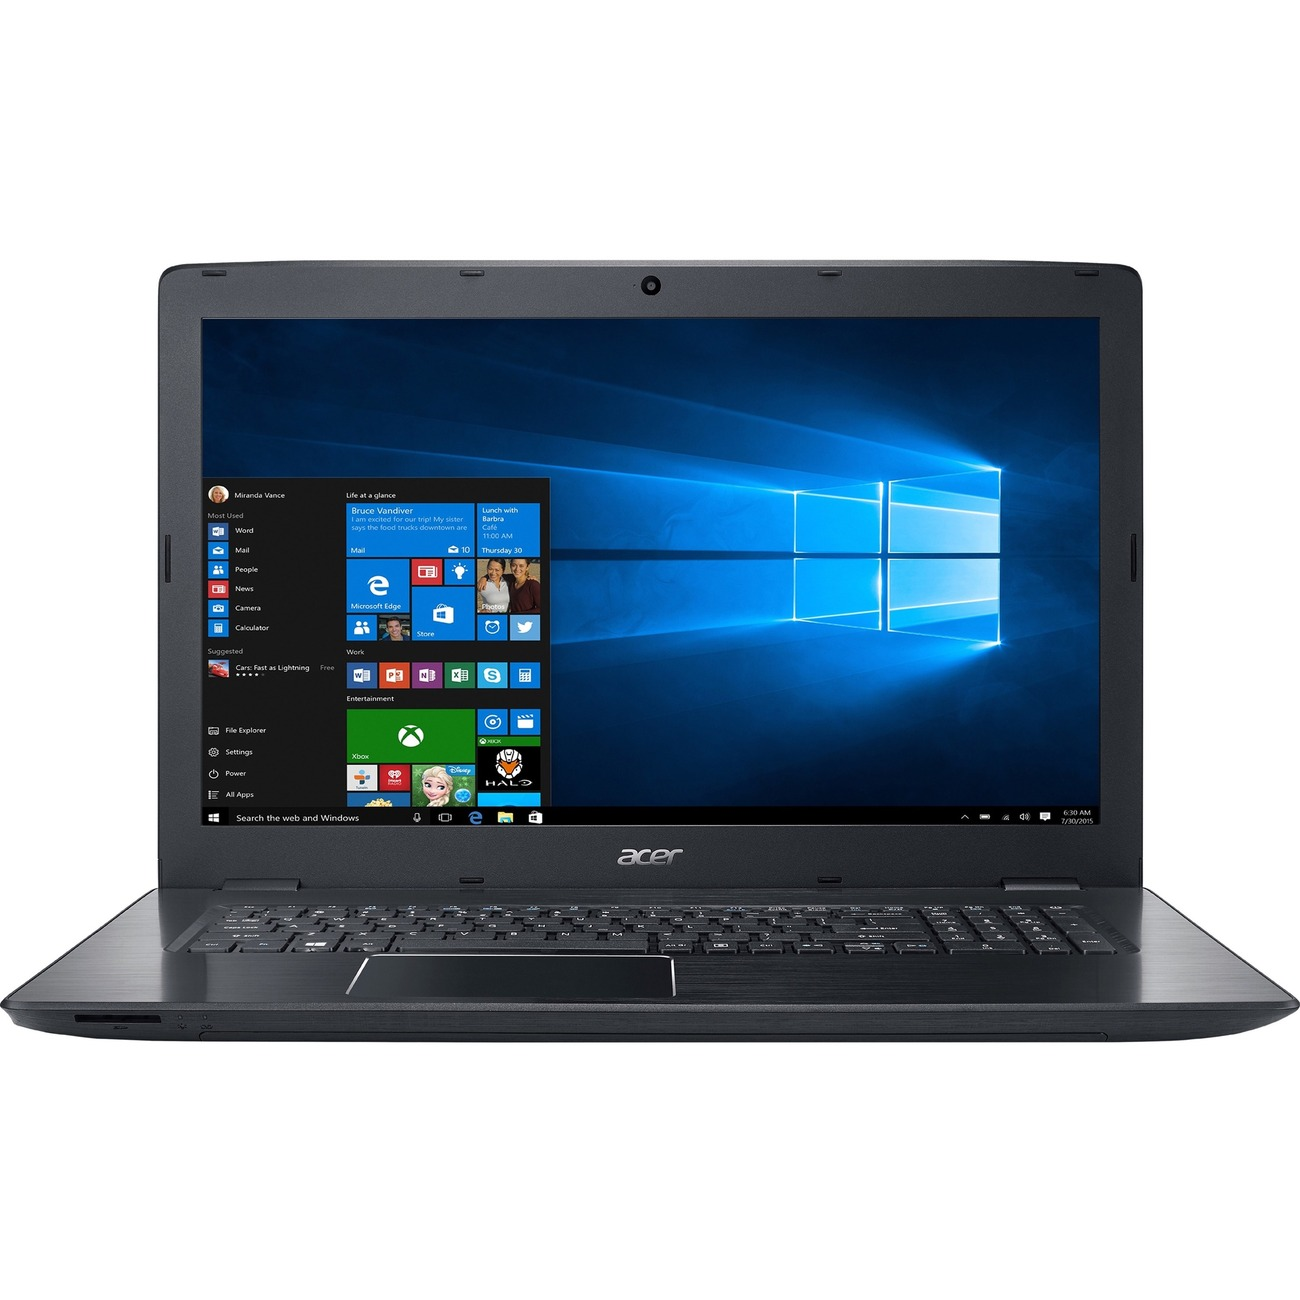 "New Acer Aspire E5-774-50sy 17.3"" Lcd Notebook - Intel Core I5 I5-7200u 2.50 Ghz"